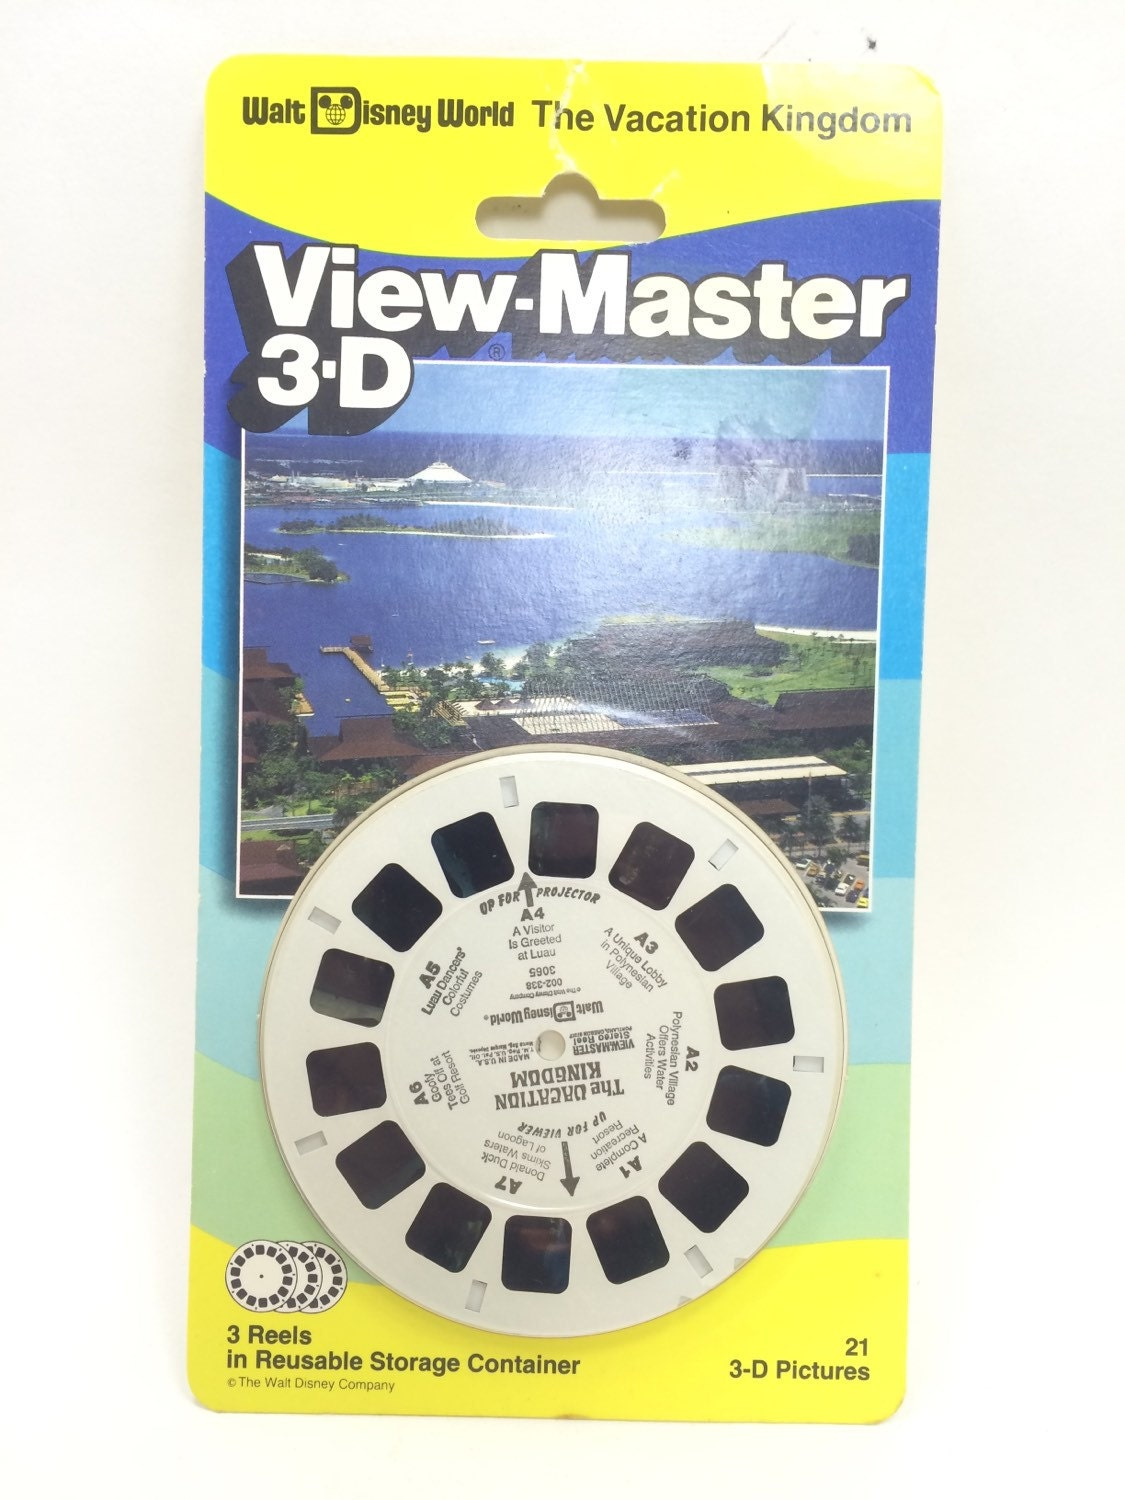 from Alexis dating viewmaster reels